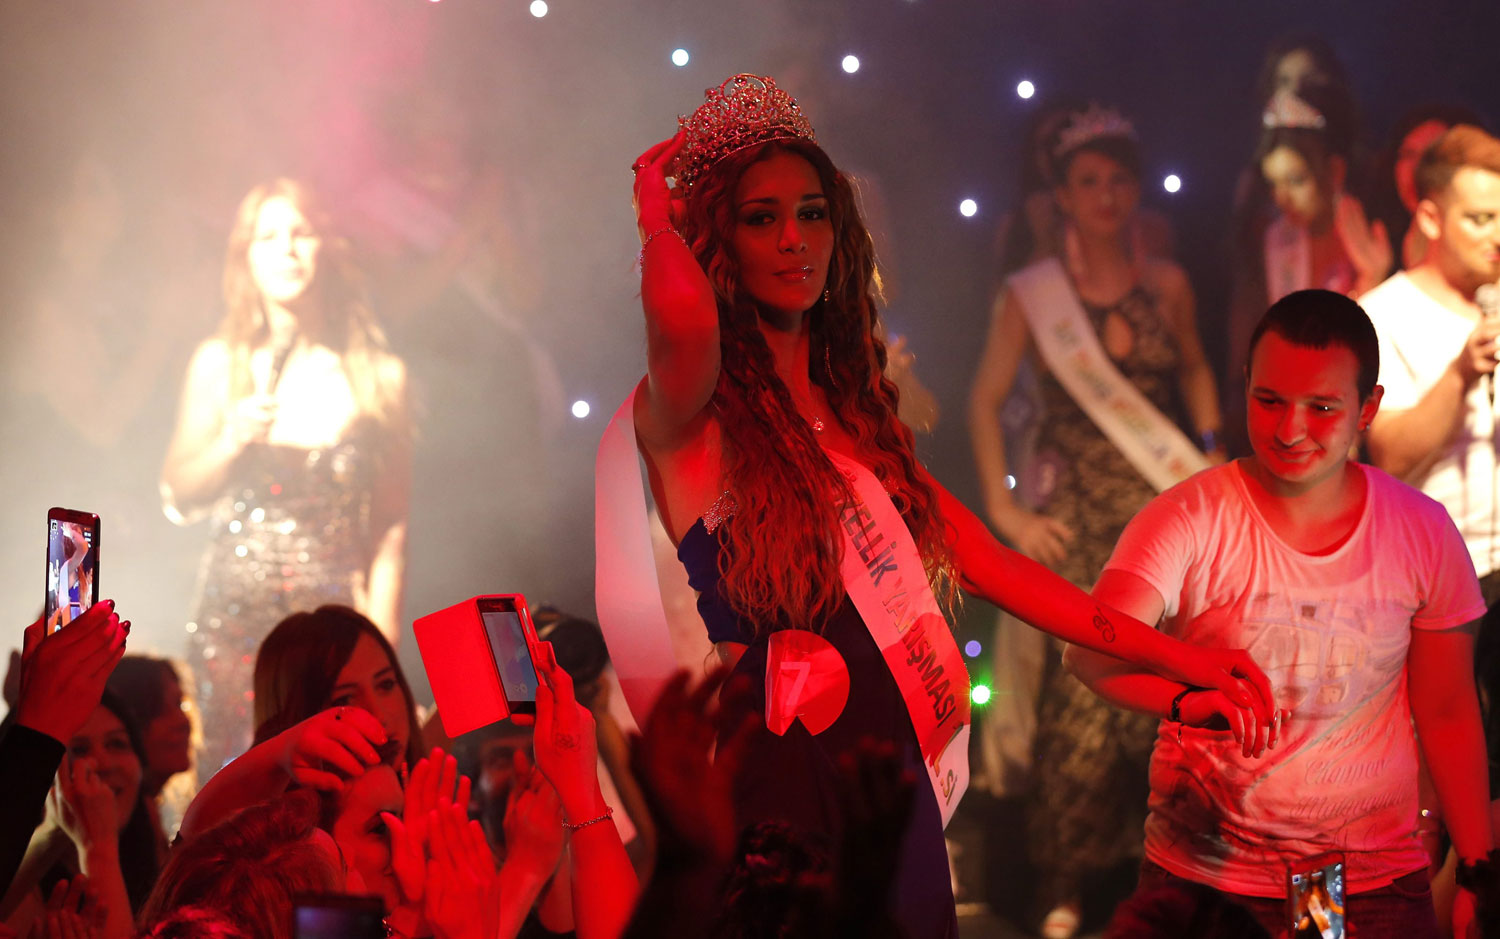 Yanki Bayramoglu poses for pictures after winning the contest in Istanbul on June 21, 2014. According to Amnesty International, transsexuals in Turkey constantly face hate crimes, harassment, and honor killings which are generally overlooked - or perpetrated - by police and government officials.